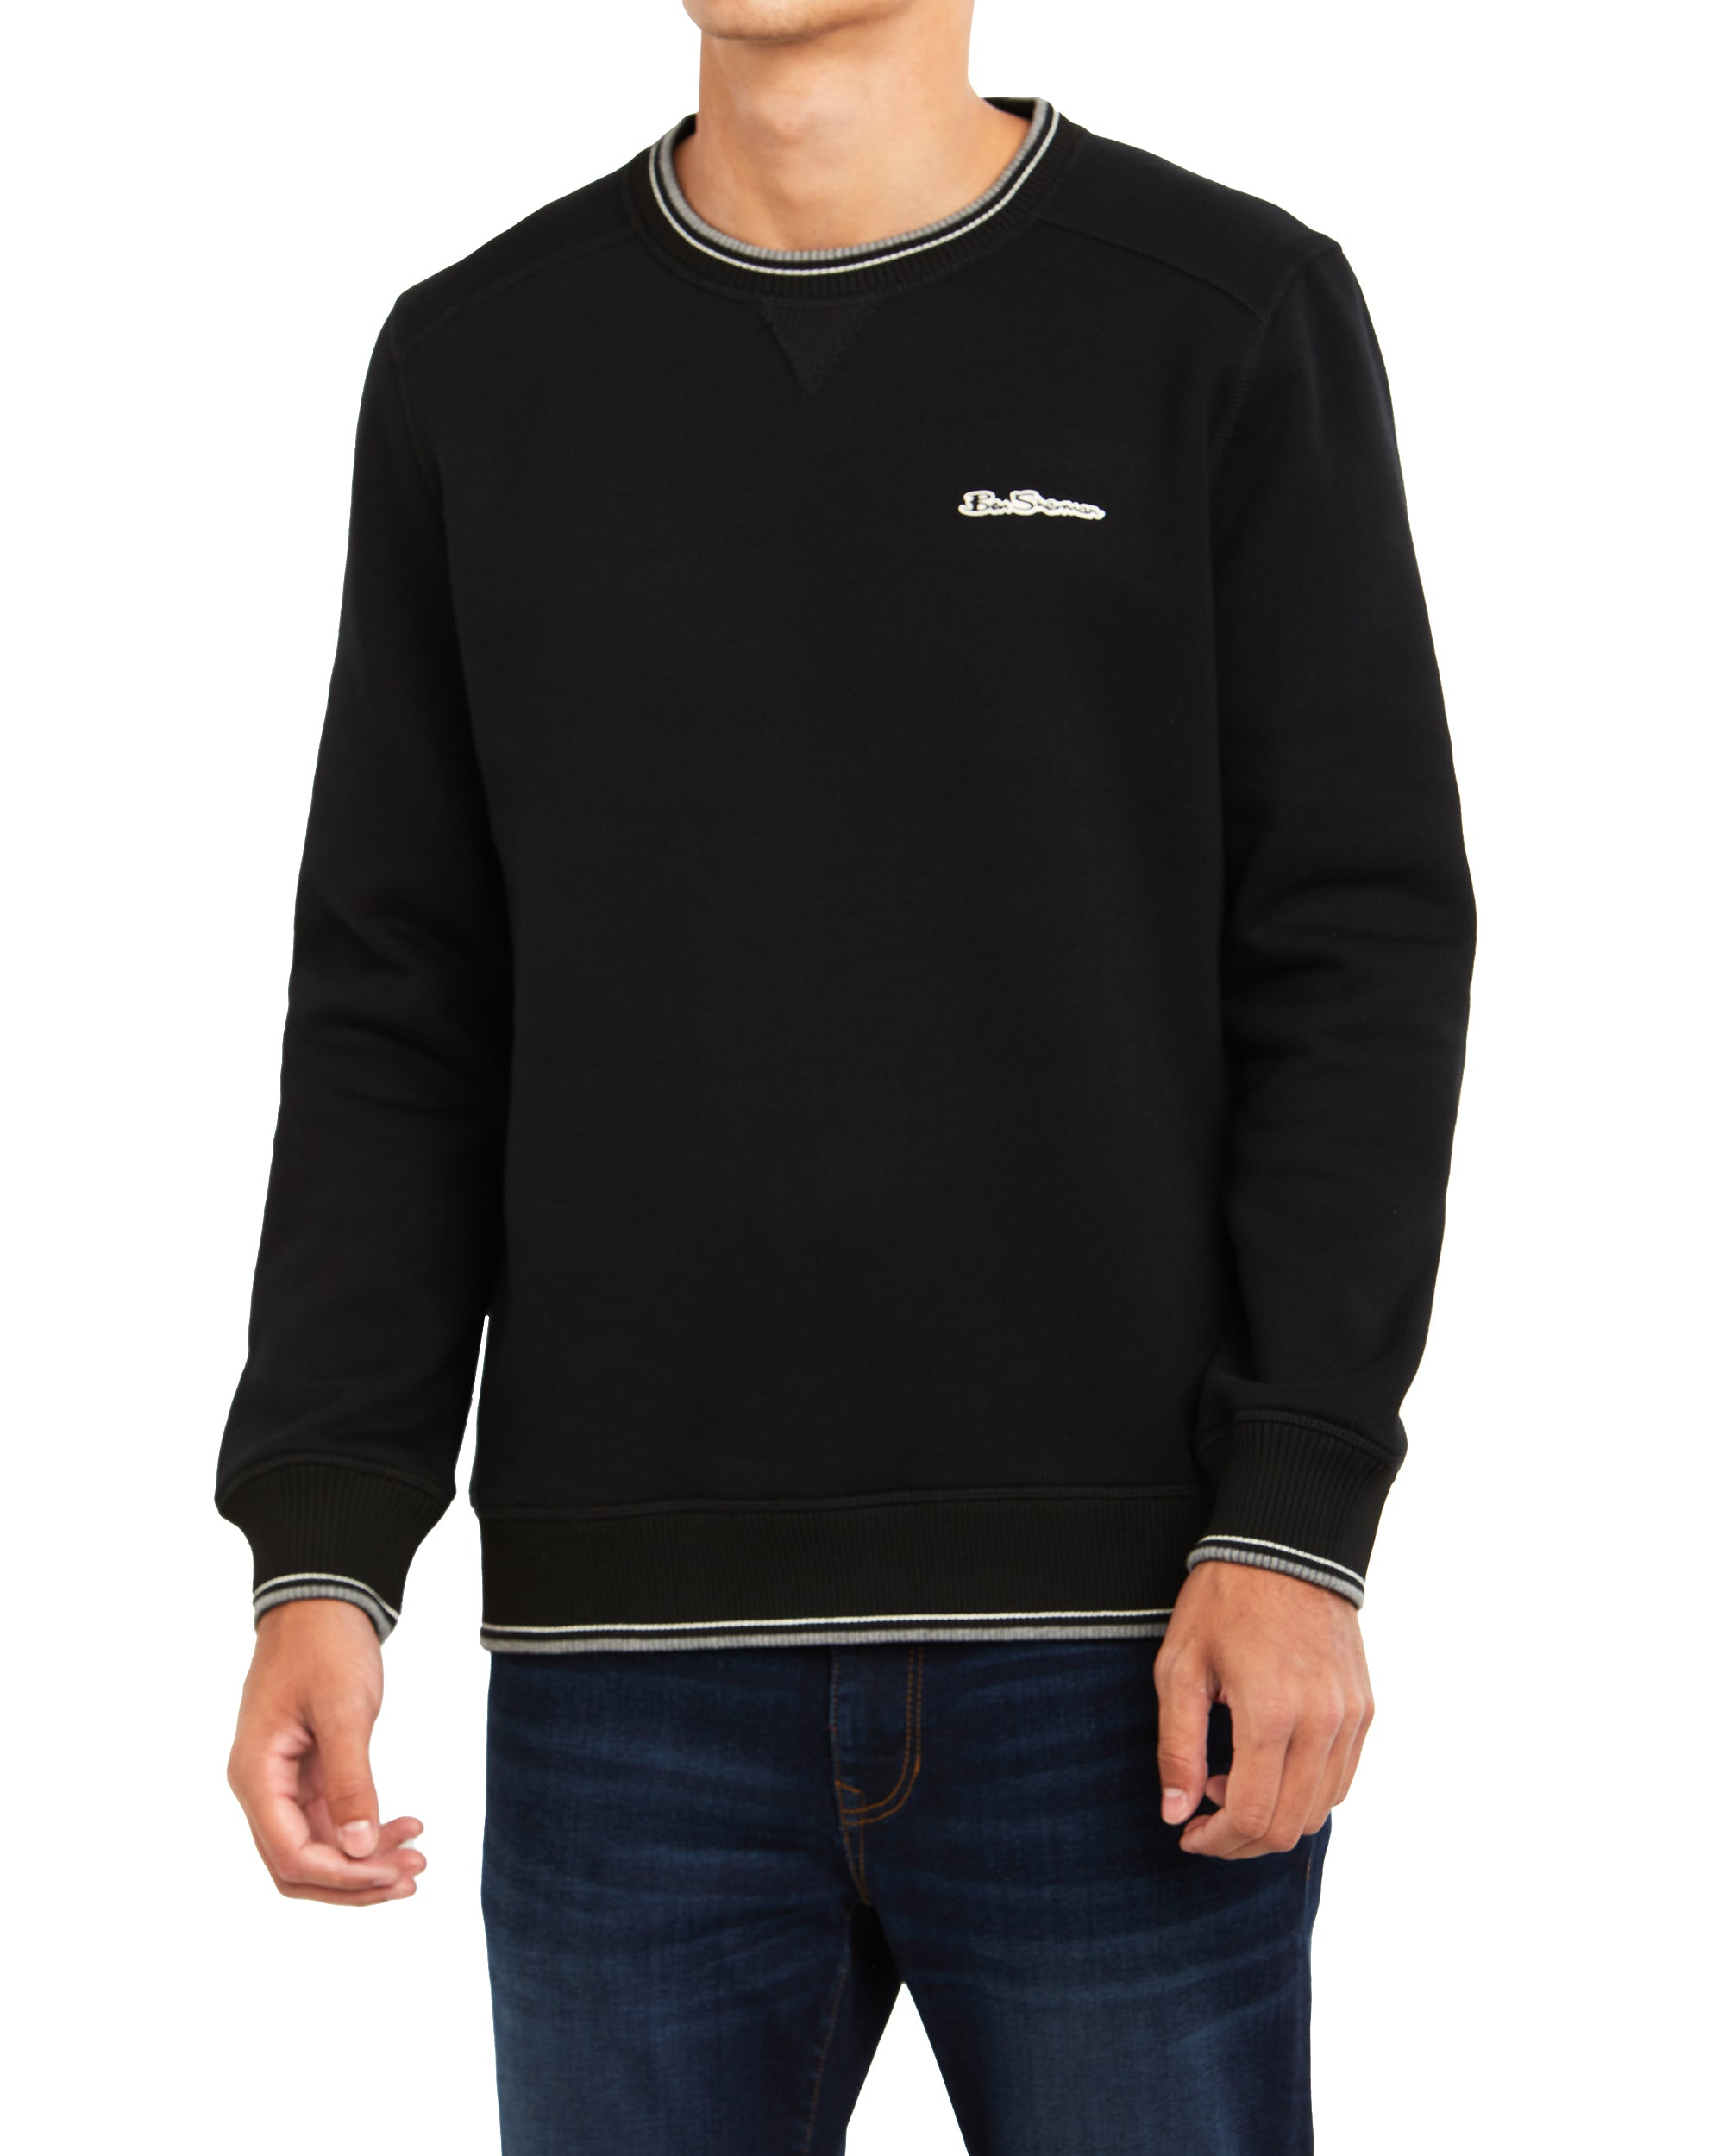 Logo Crewneck Sweatshirt - Black